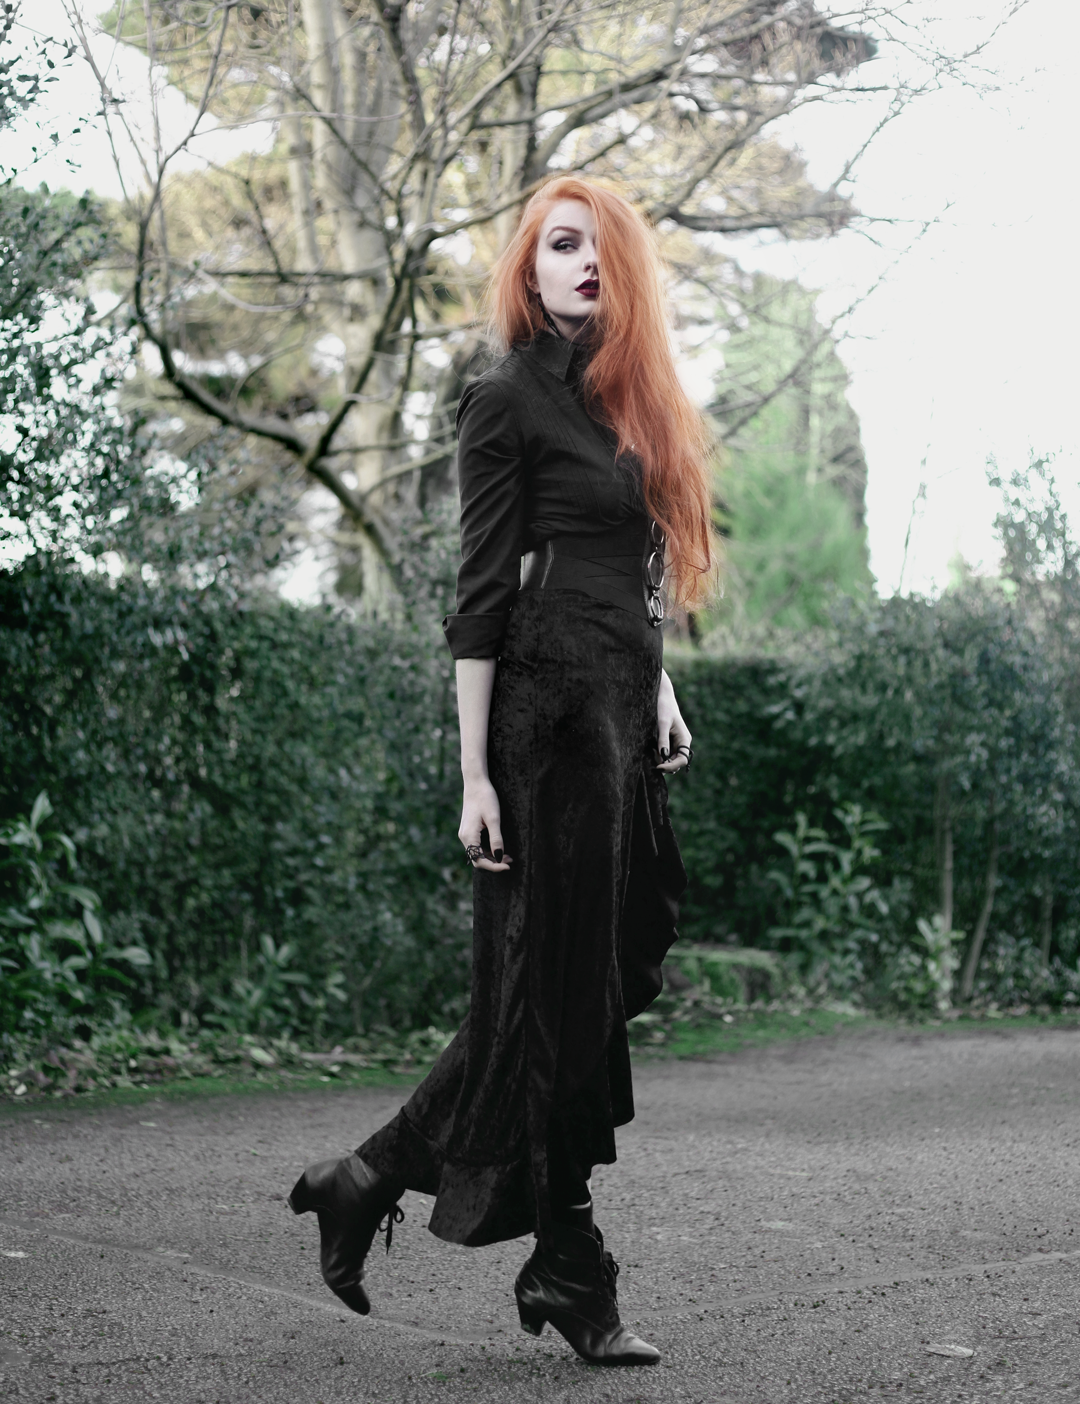 Olivia Emily wears Black Shirt, Asos Triple Ring Belt, Rokoko Velvet High Low Ruffle Skirt, and Vintage Pointed Boots